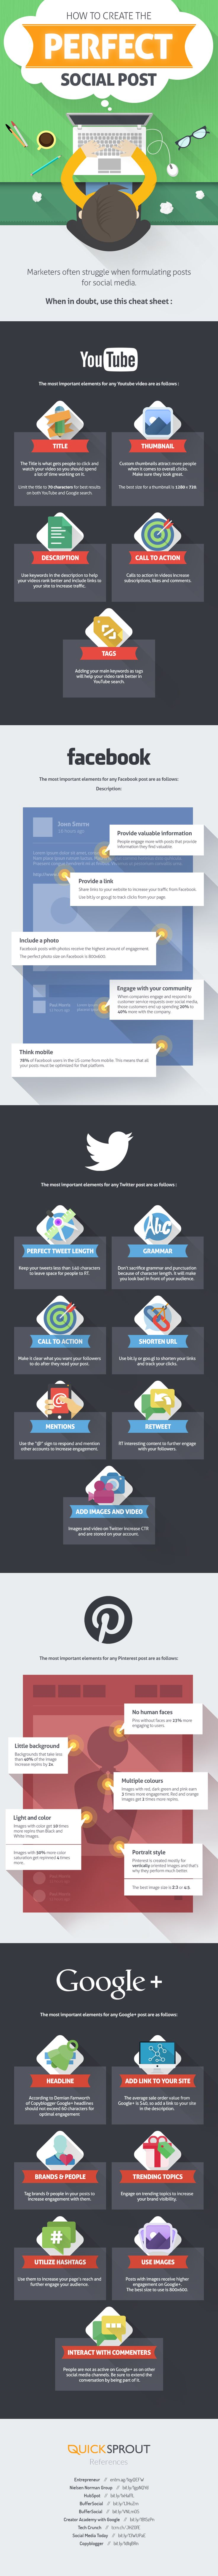 How to Create the Perfect Post for Social Media Channels #infographic #cheatsheet